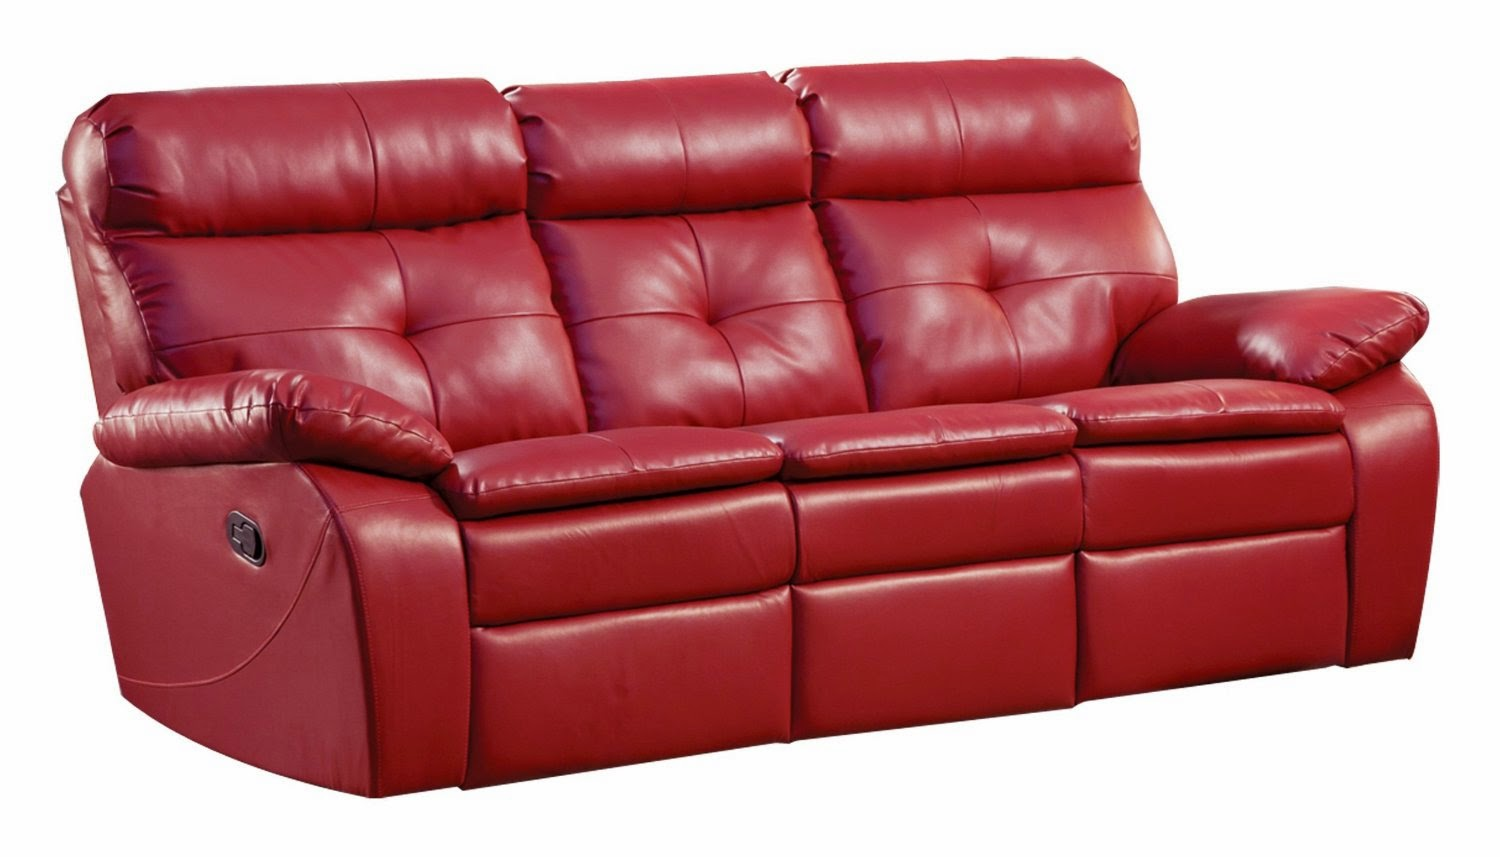 The best reclining sofa reviews red leather reclining sofa and loveseat Red sofas and loveseats